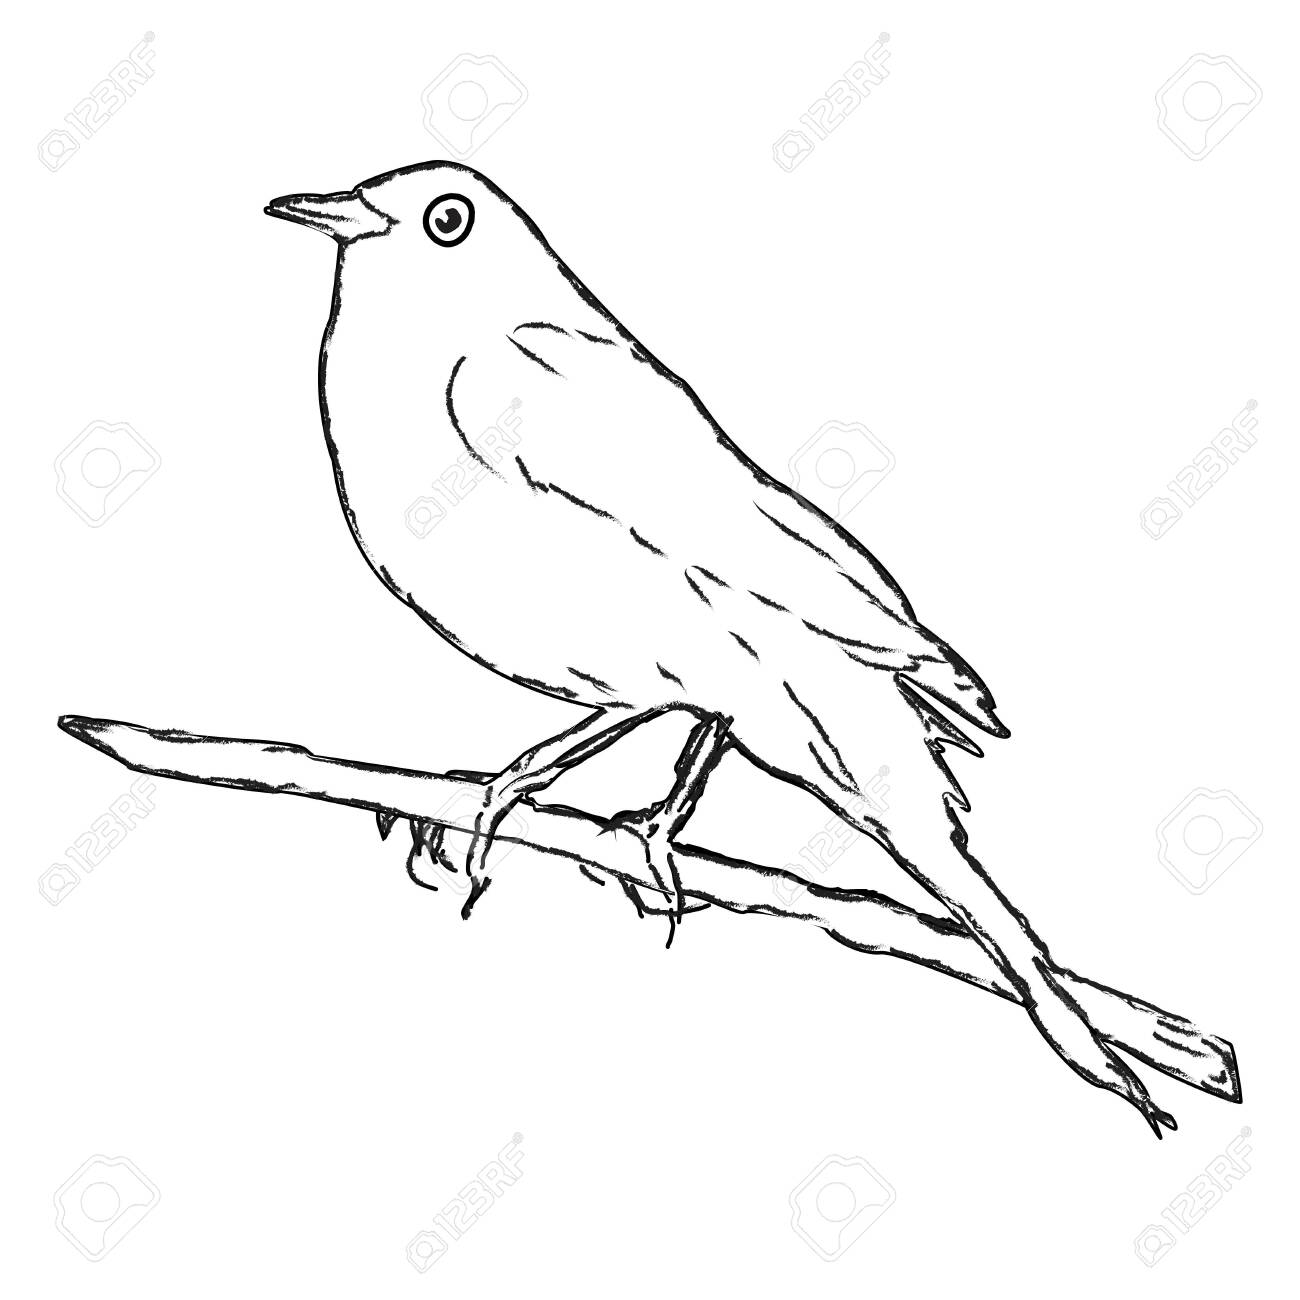 Bird On A Branch A Simple Drawing With A Contour Line Royalty Free Cliparts Vectors And Stock Illustration Image 133284087